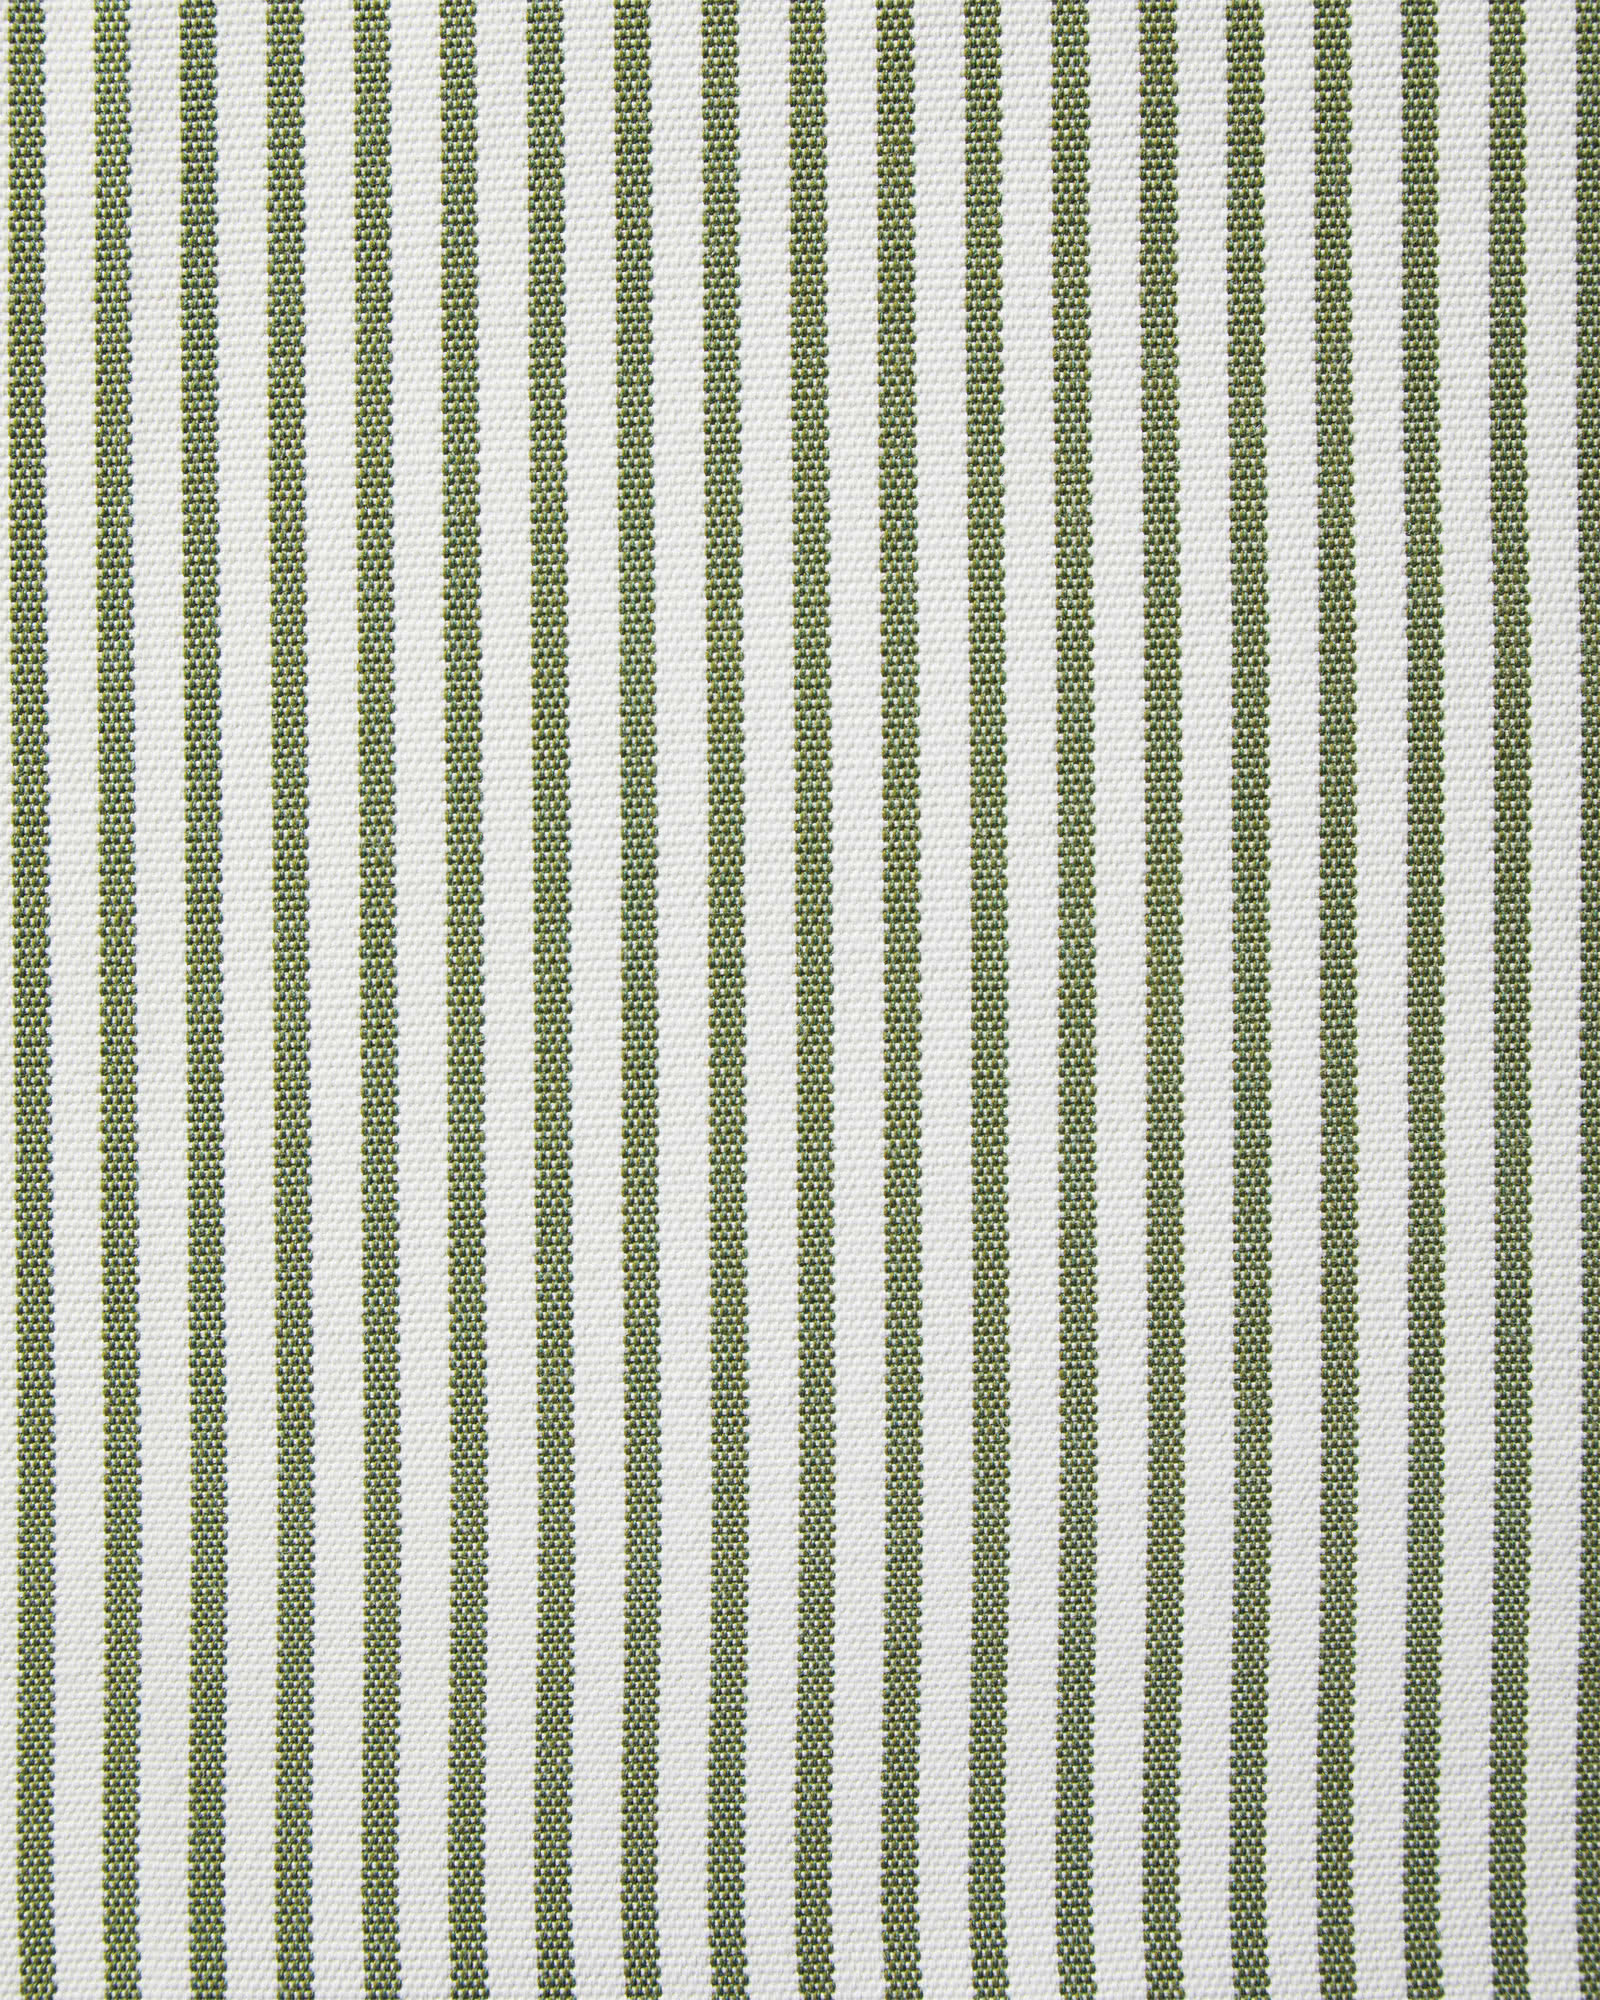 Fabric by the Yard – Perennials® Pinstripe Fabric, Moss